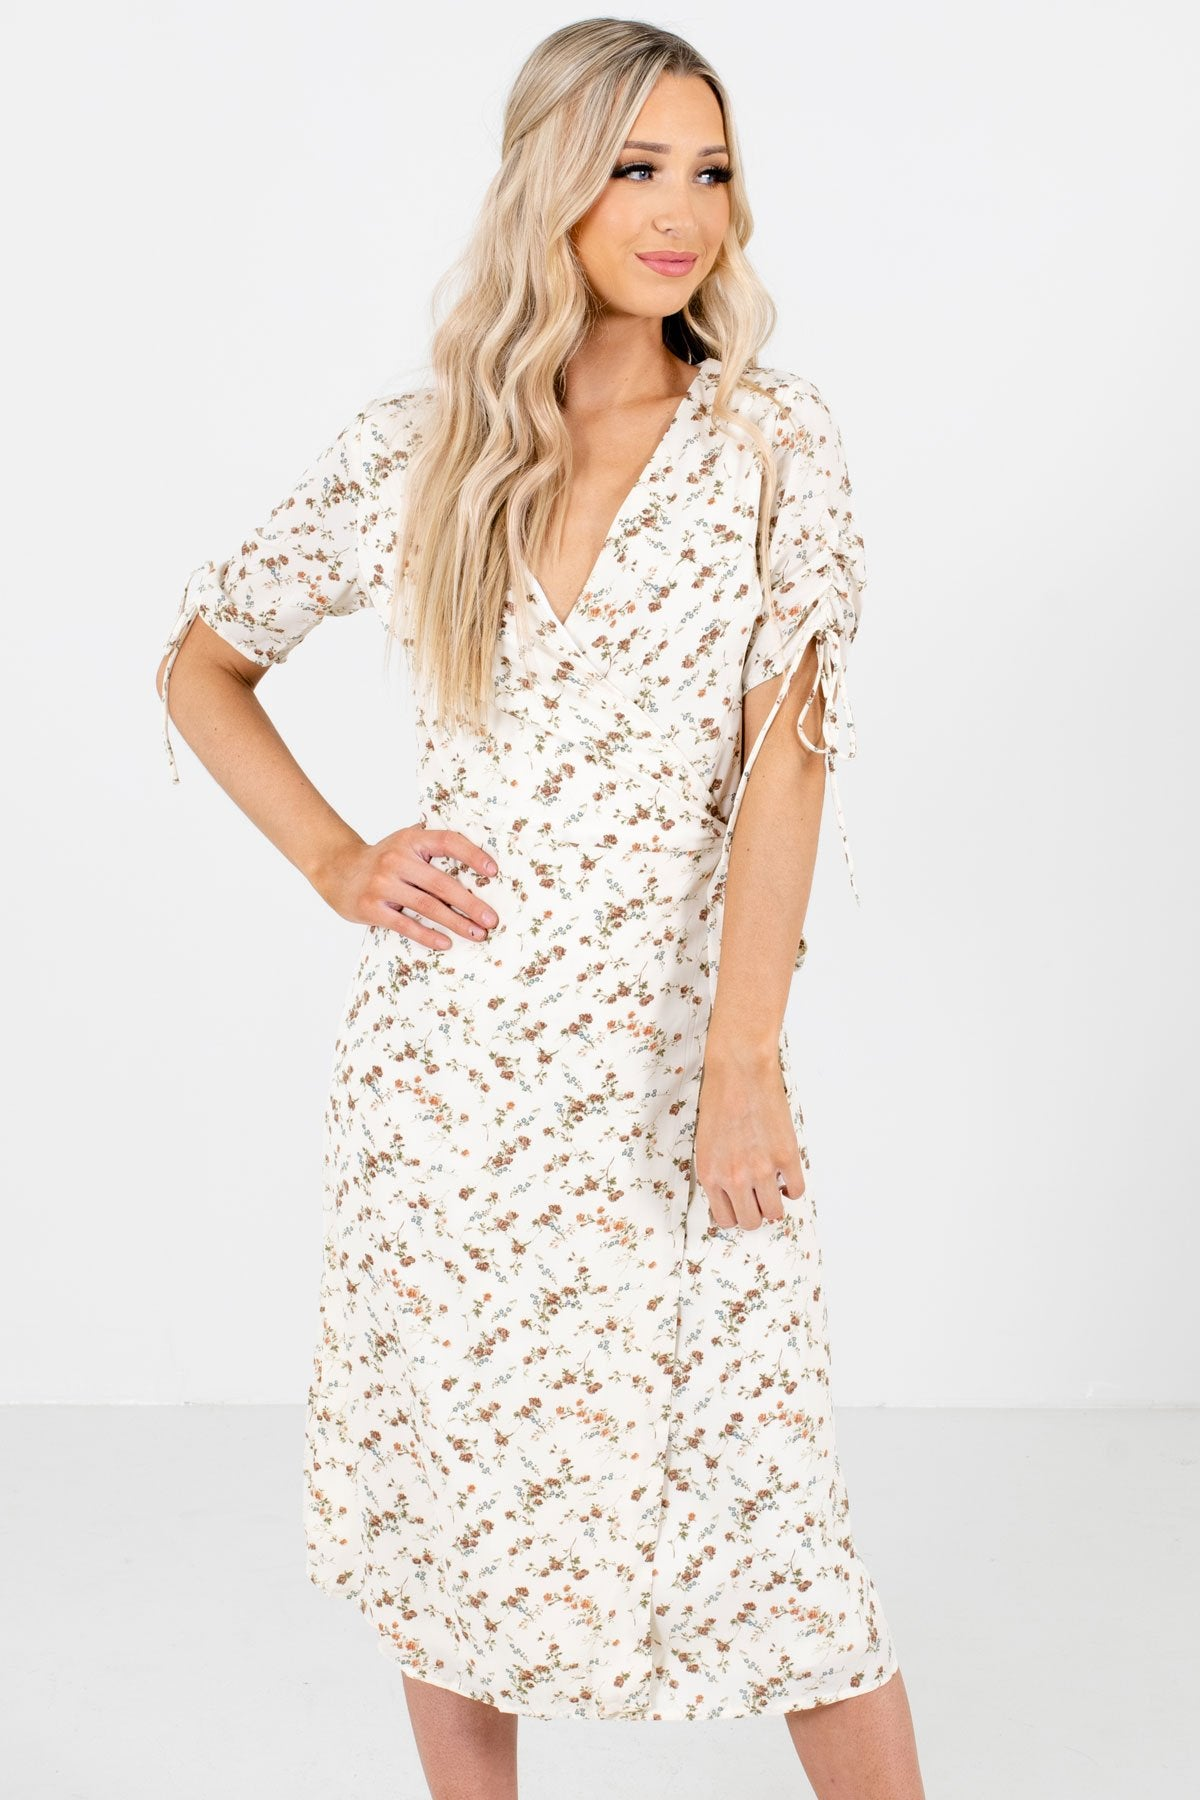 White Floral Patterned Boutique Midi Dresses for Women